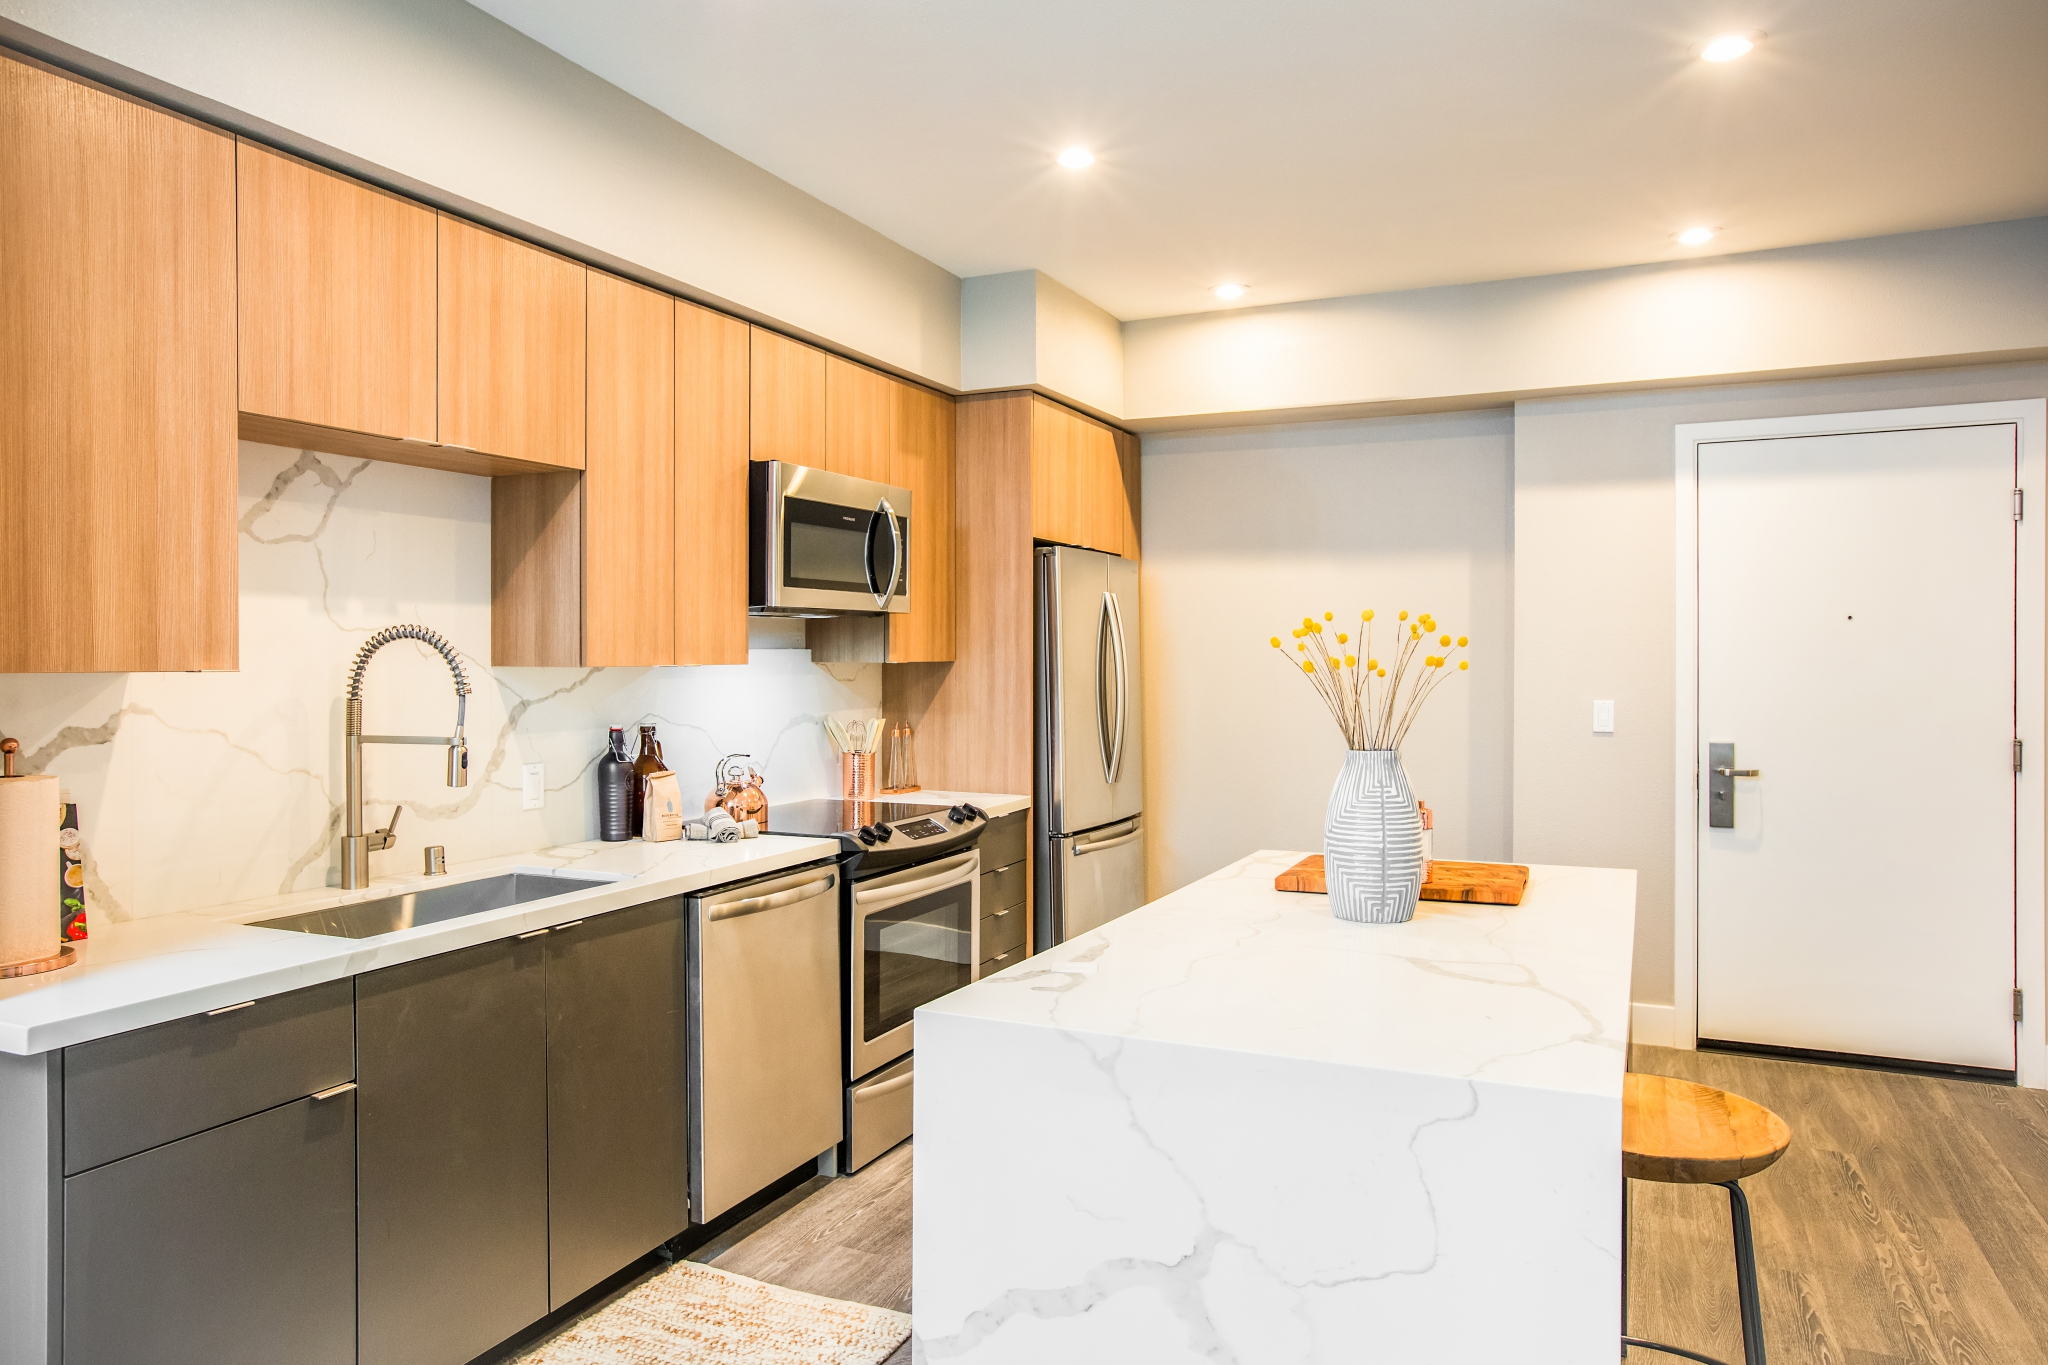 Interior of apartment with open kitchen with marble counters